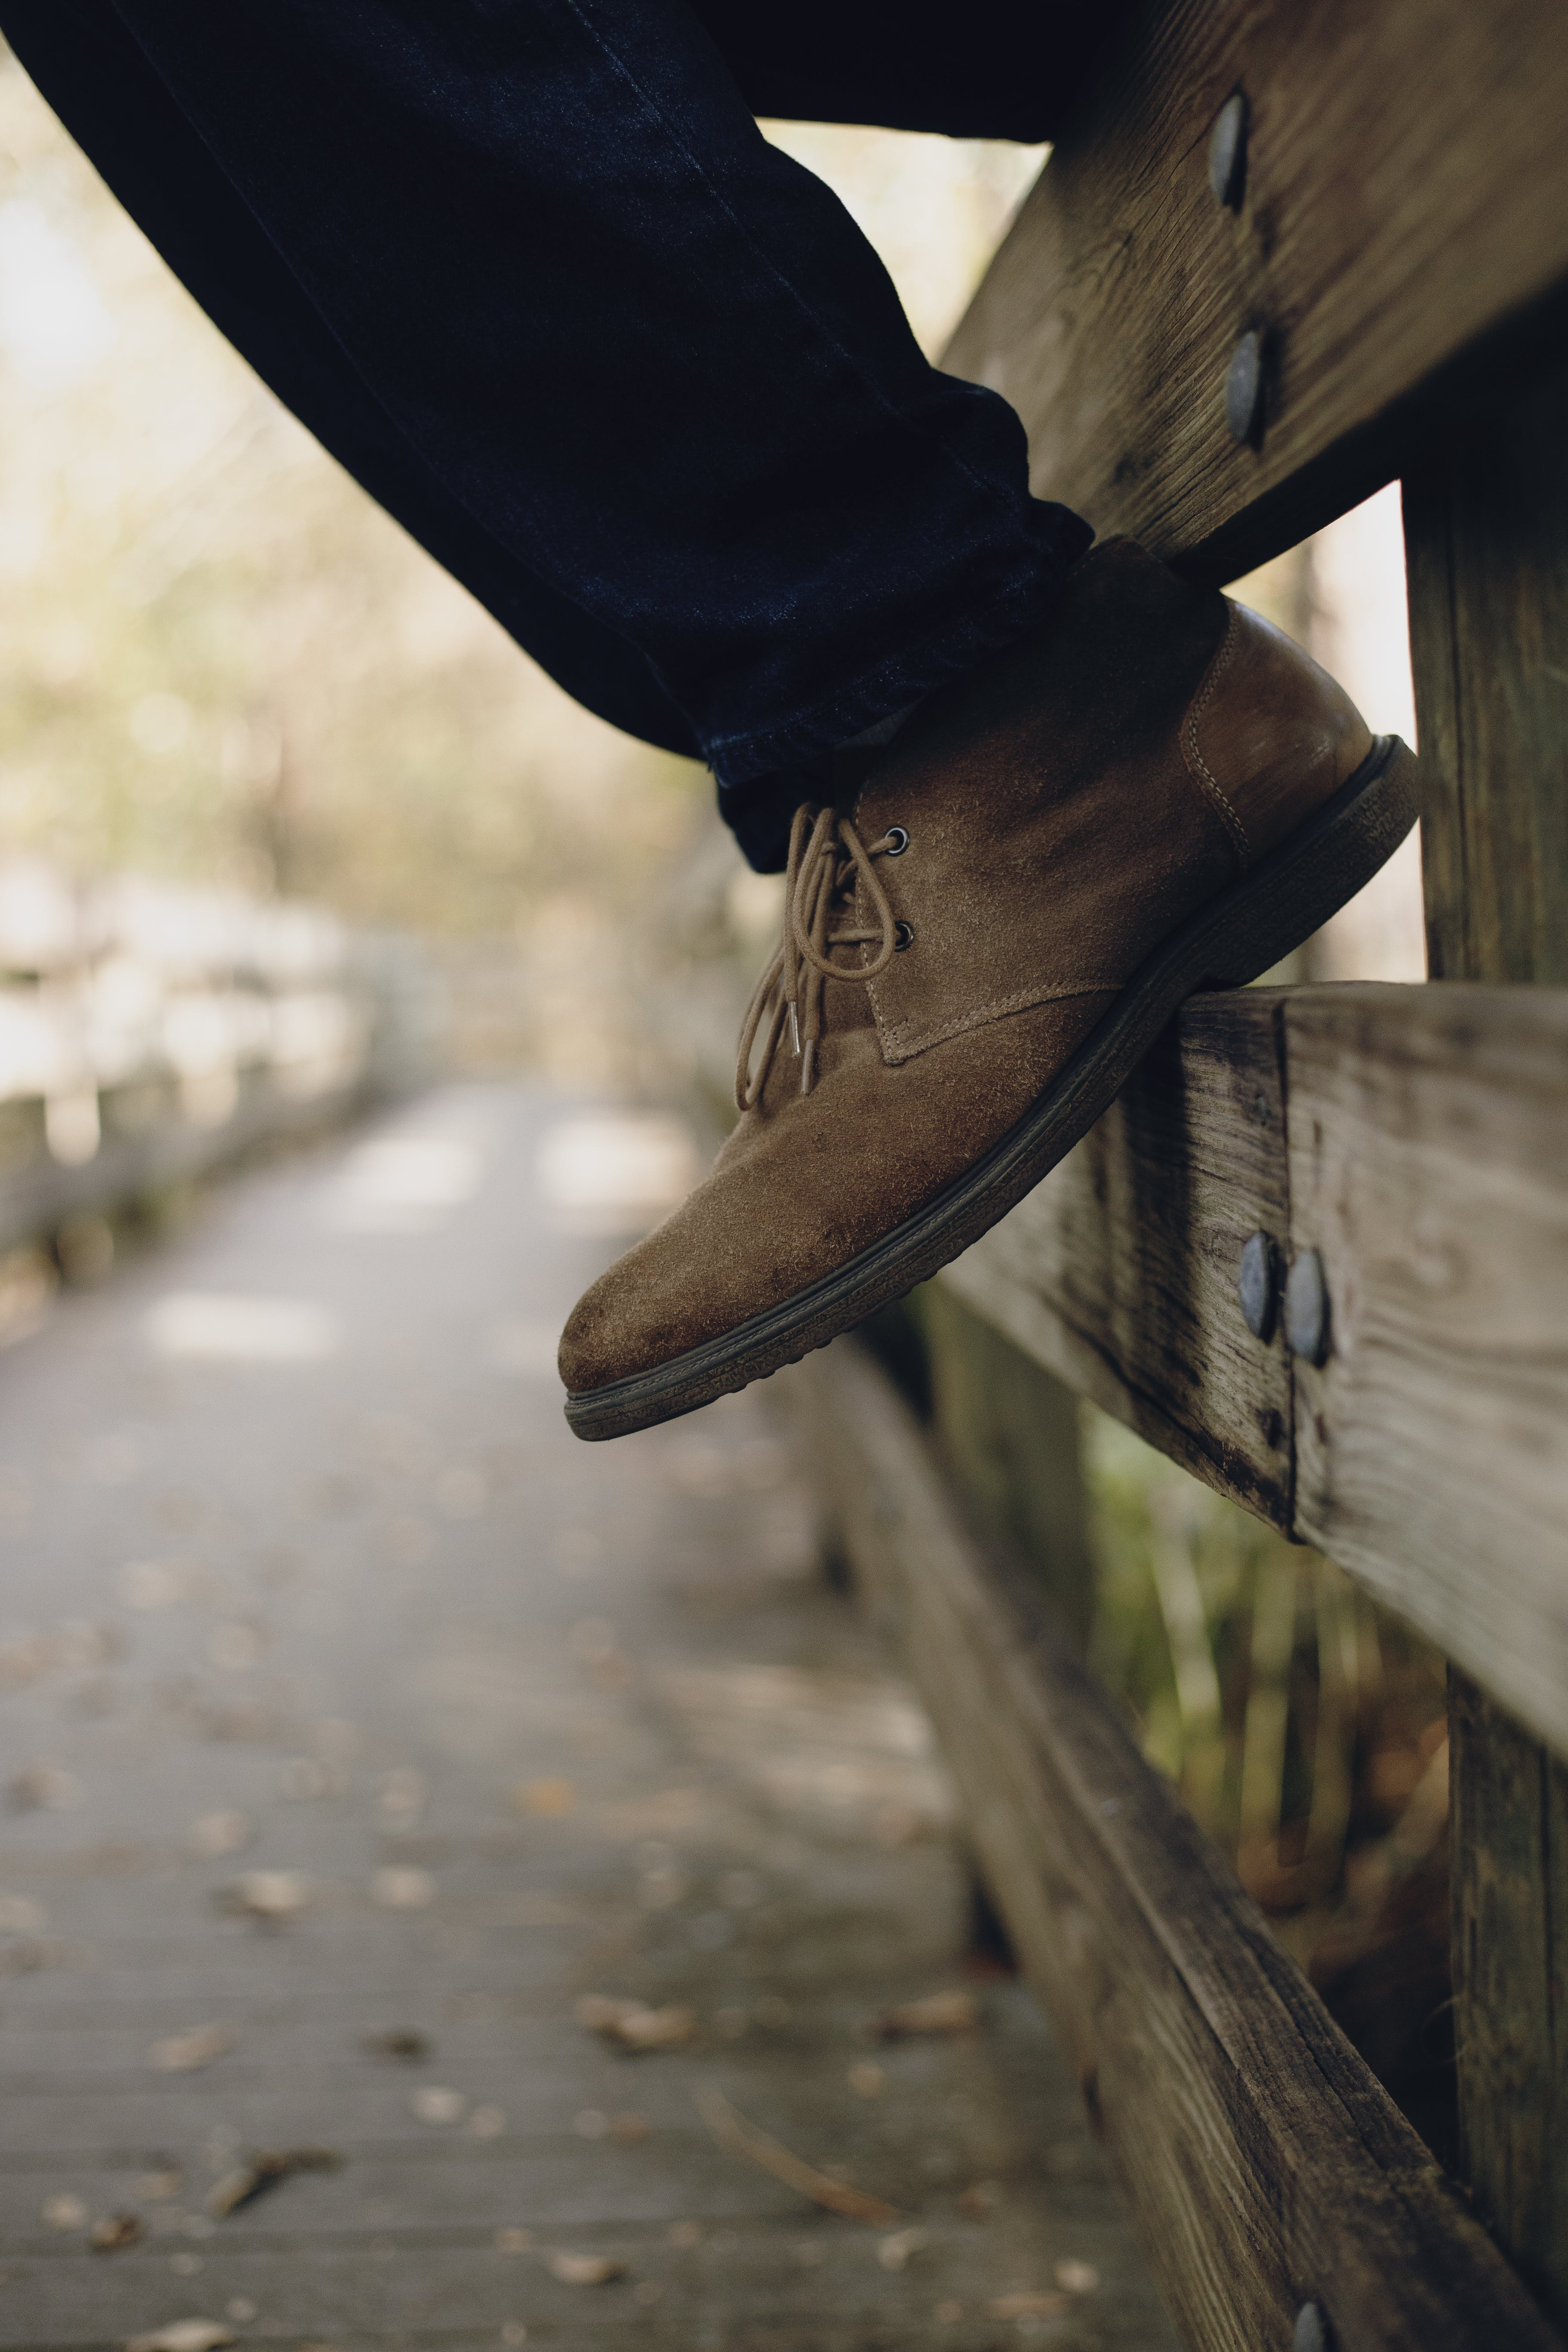 Selective Focus Photo of Brown Boots